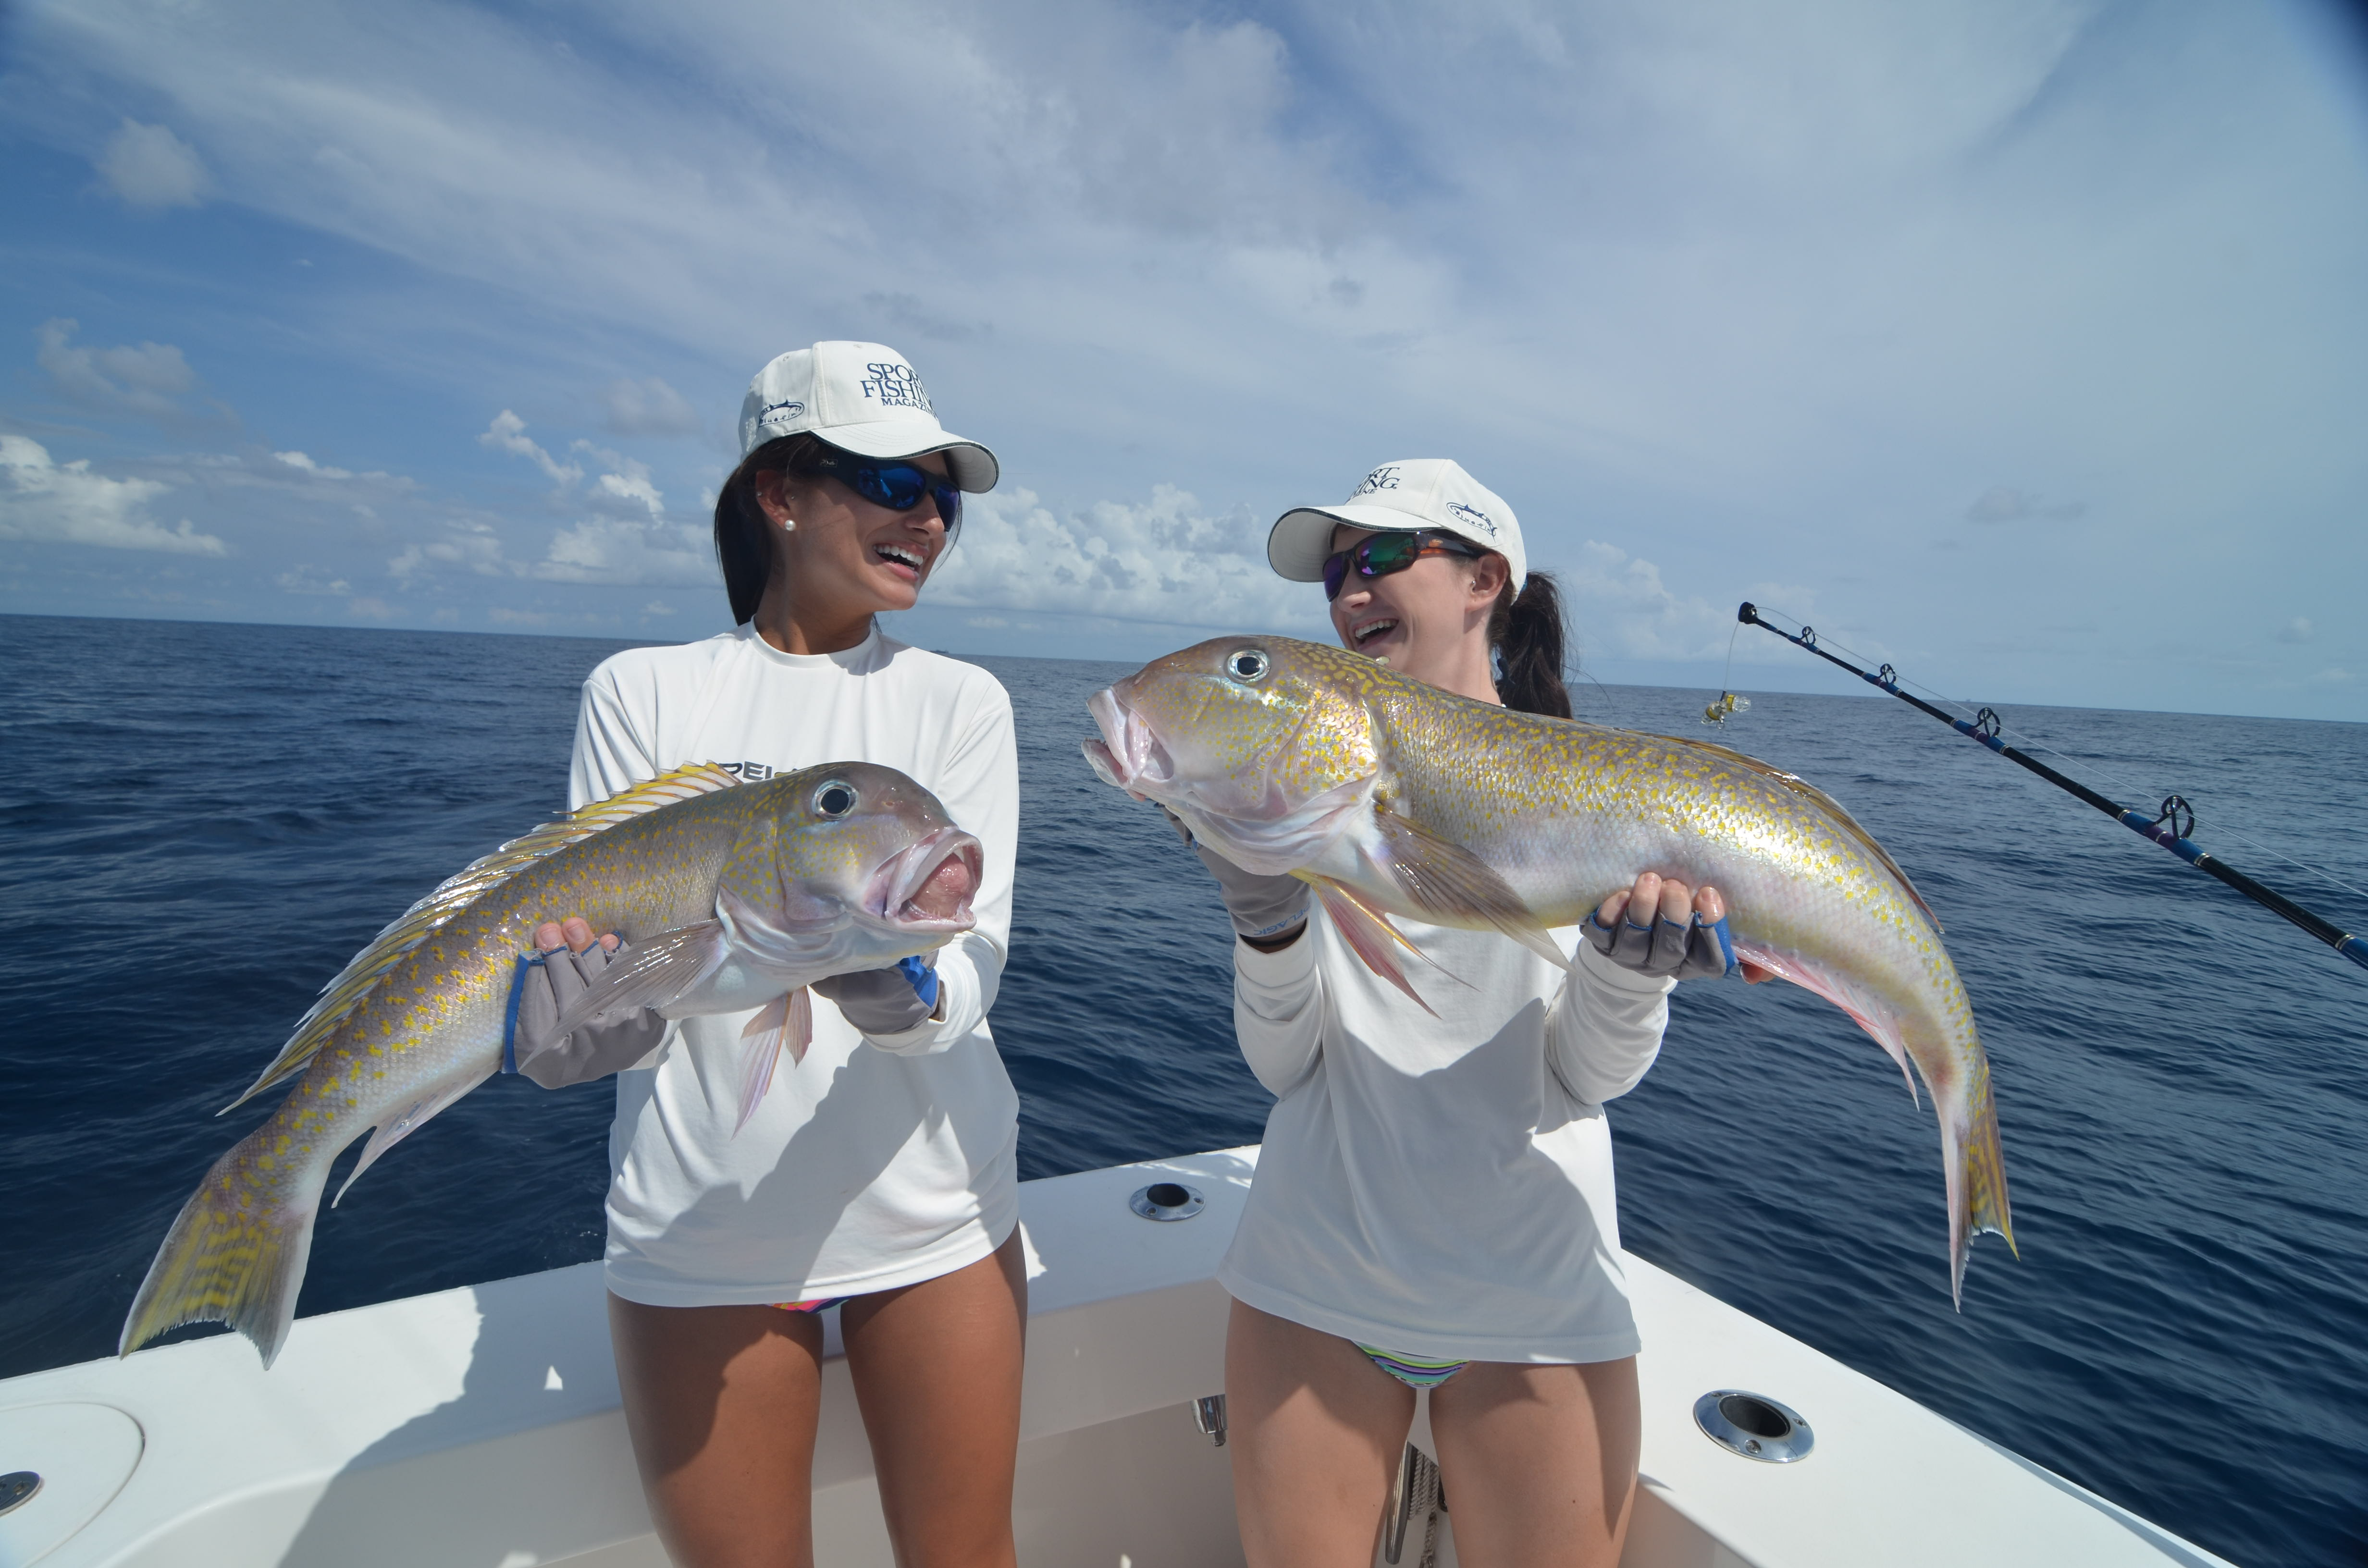 Beautiful girl 39 s catching swordfish and giant tilefish for Fishing for girls